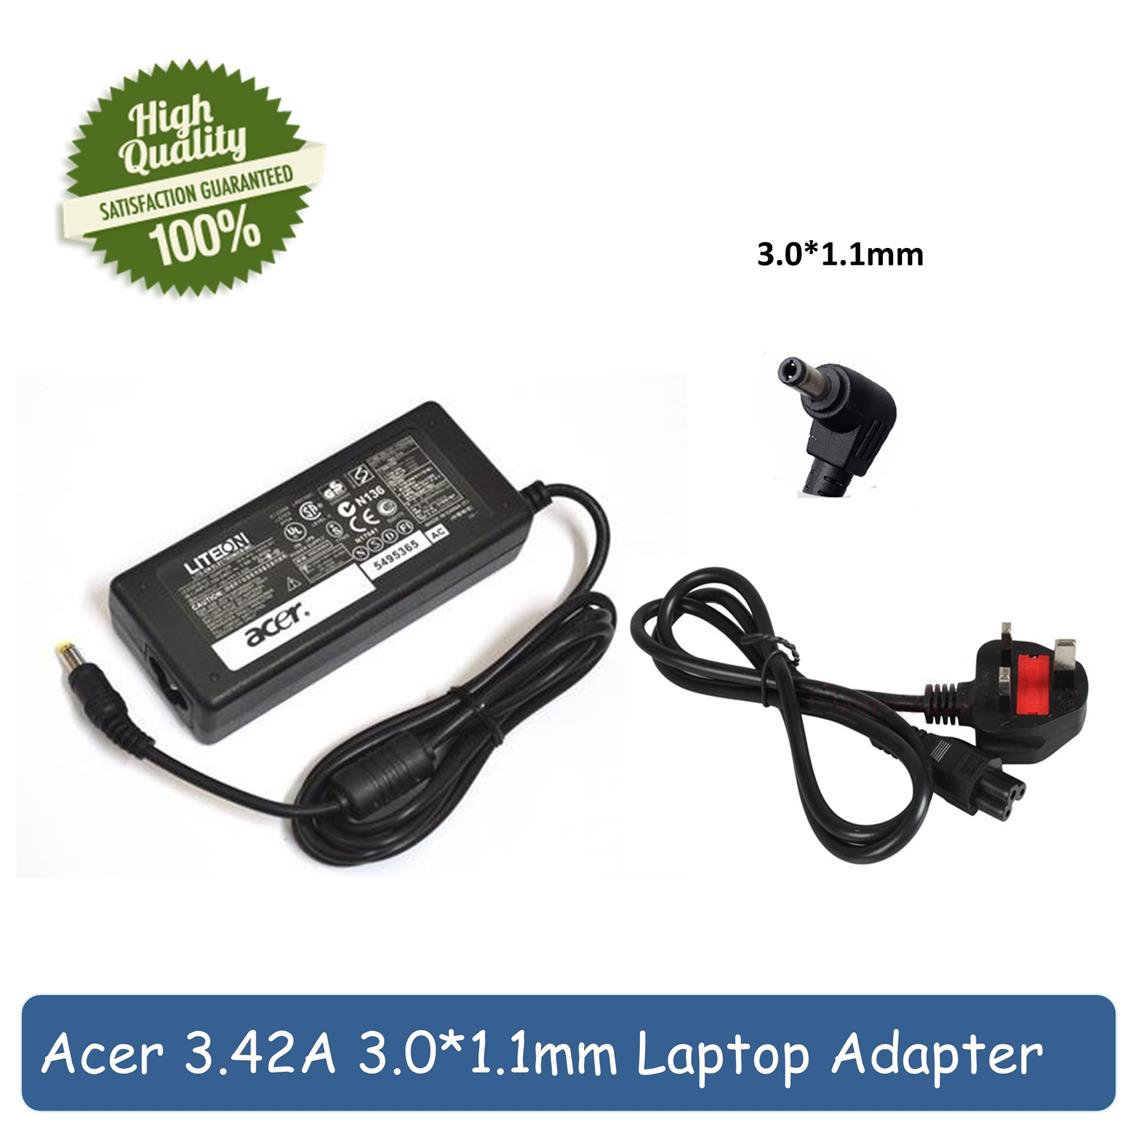 Acer 3.0*1.1mm Iconia W700 W700P W710 Series 65W Charger Adapter